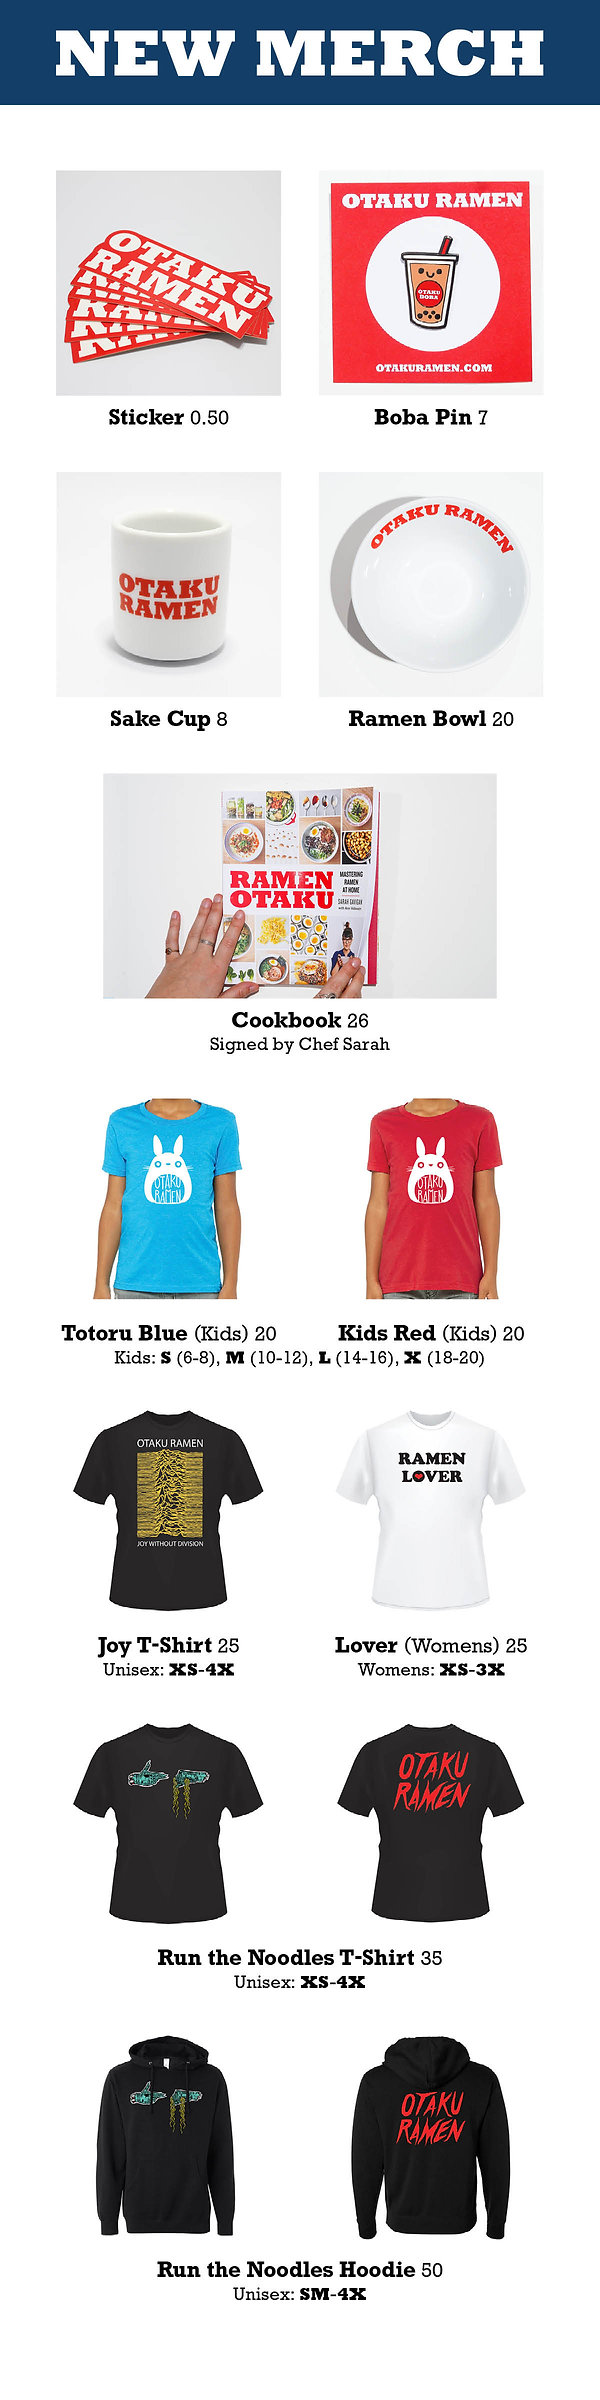 otaku_menu_p0_merch_0118215.jpg